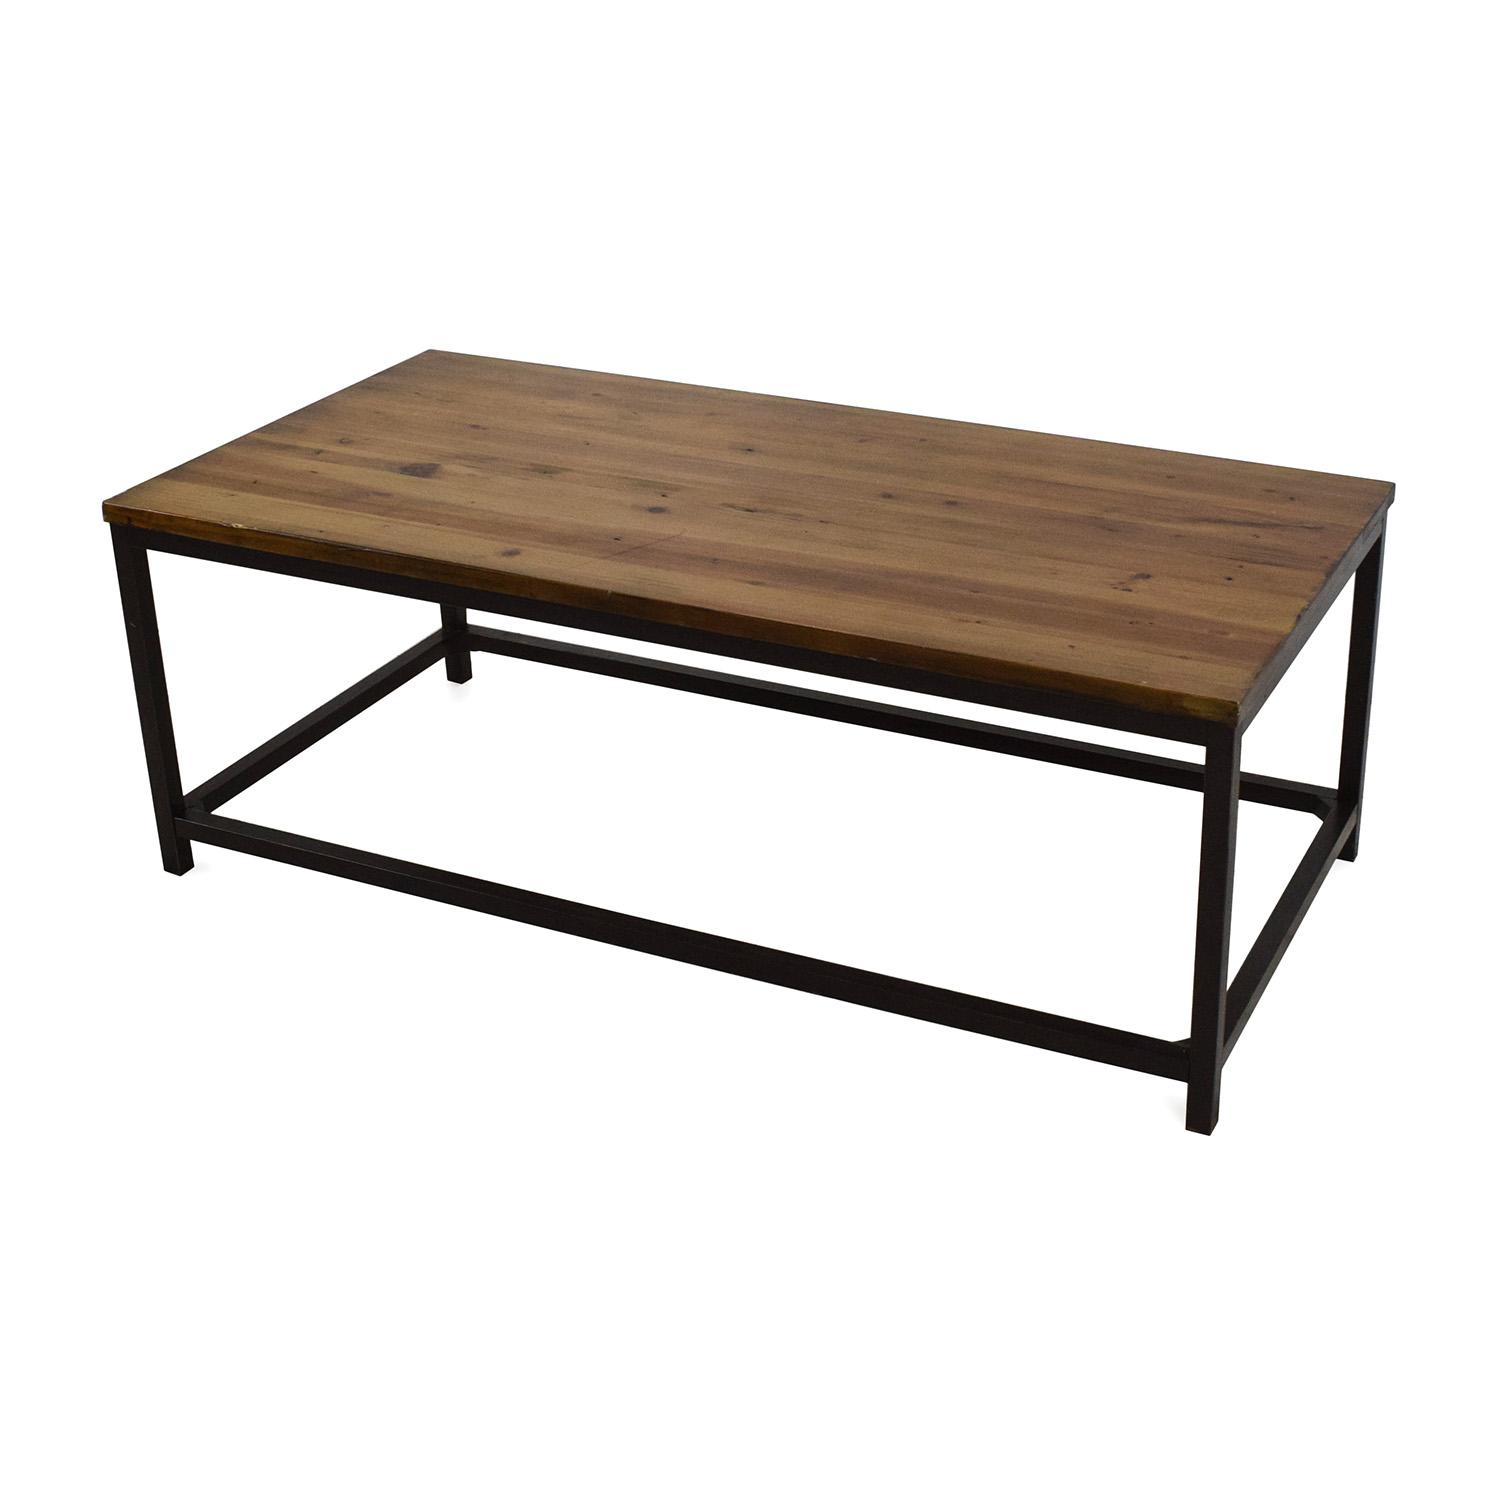 58 off pottery barn pottery barn wood coffee table tables buy pottery barn wood coffee table pottery barn coffee tables geotapseo Image collections